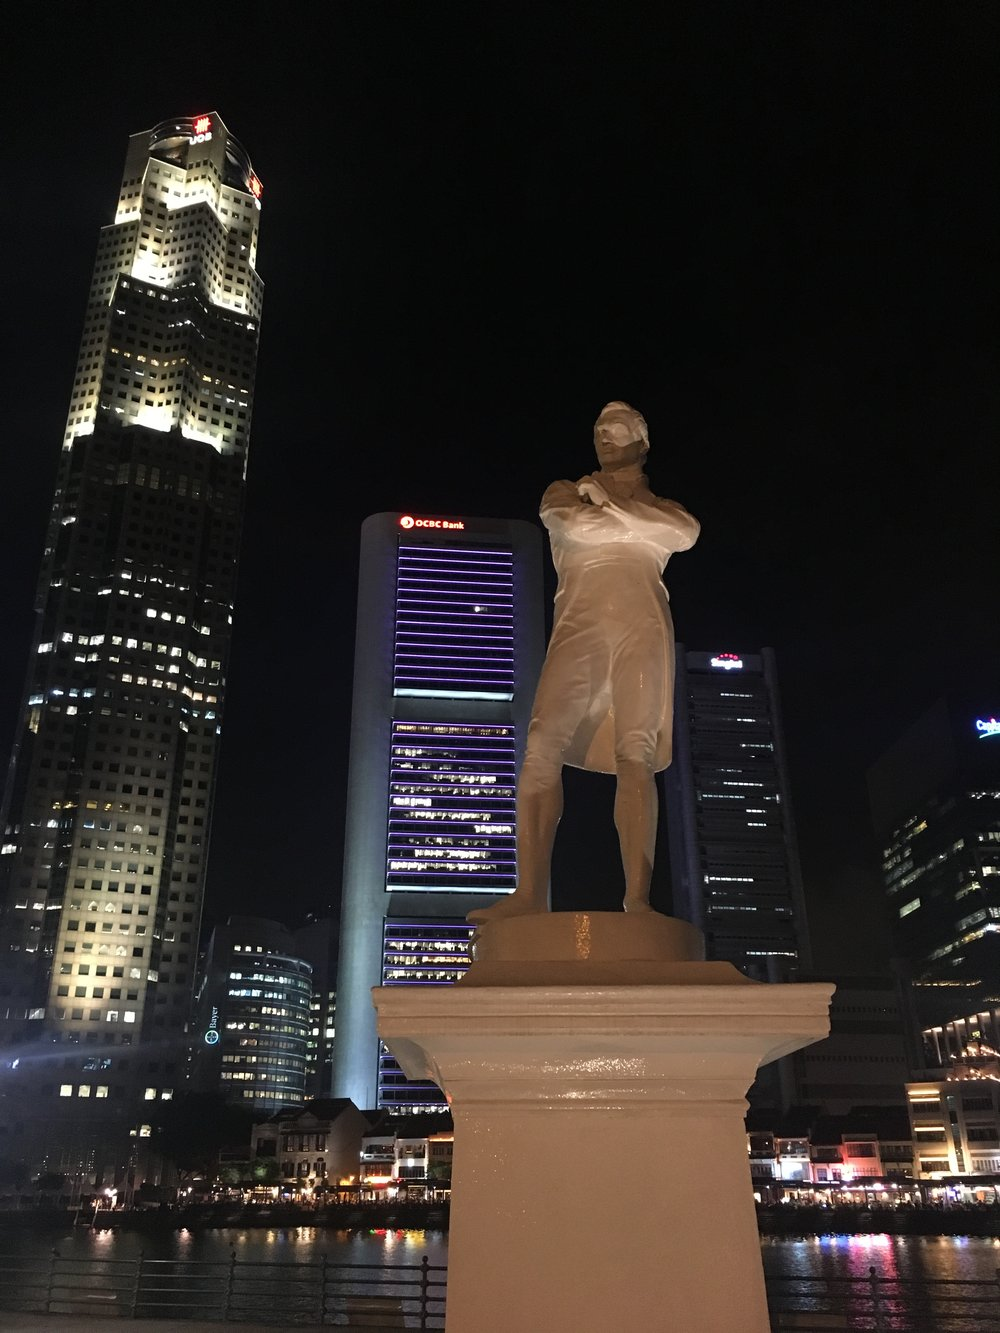 A statue of Thomas Raffles in front of the Raffles Tower